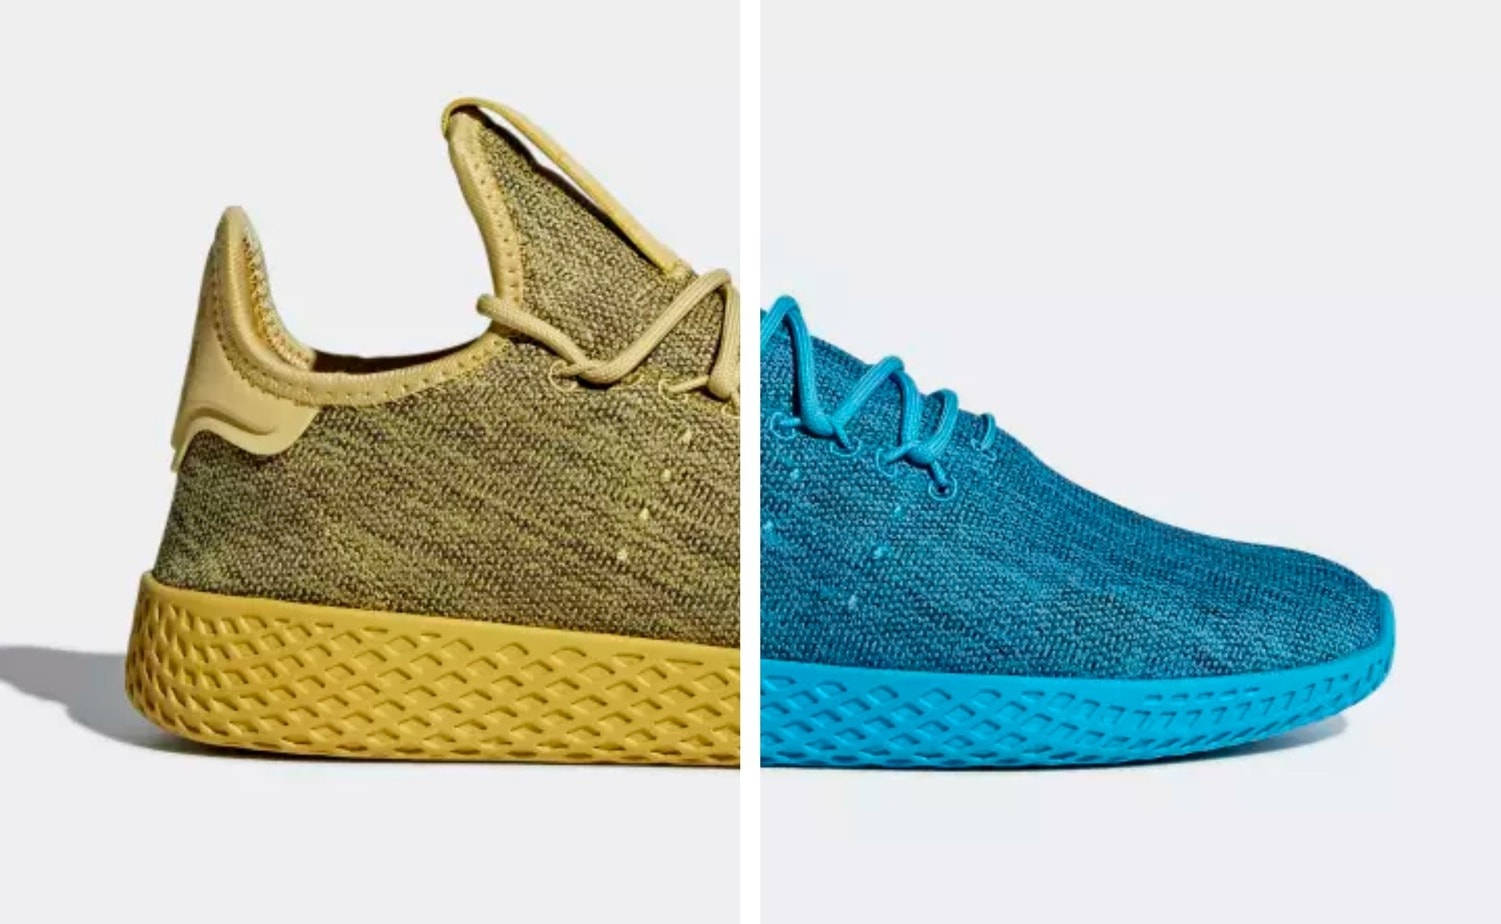 fe1a12a2474 Pharrell and adidas Release a Two-Part Tonal Tennis Hu Pack Featuring  Bright New Colors